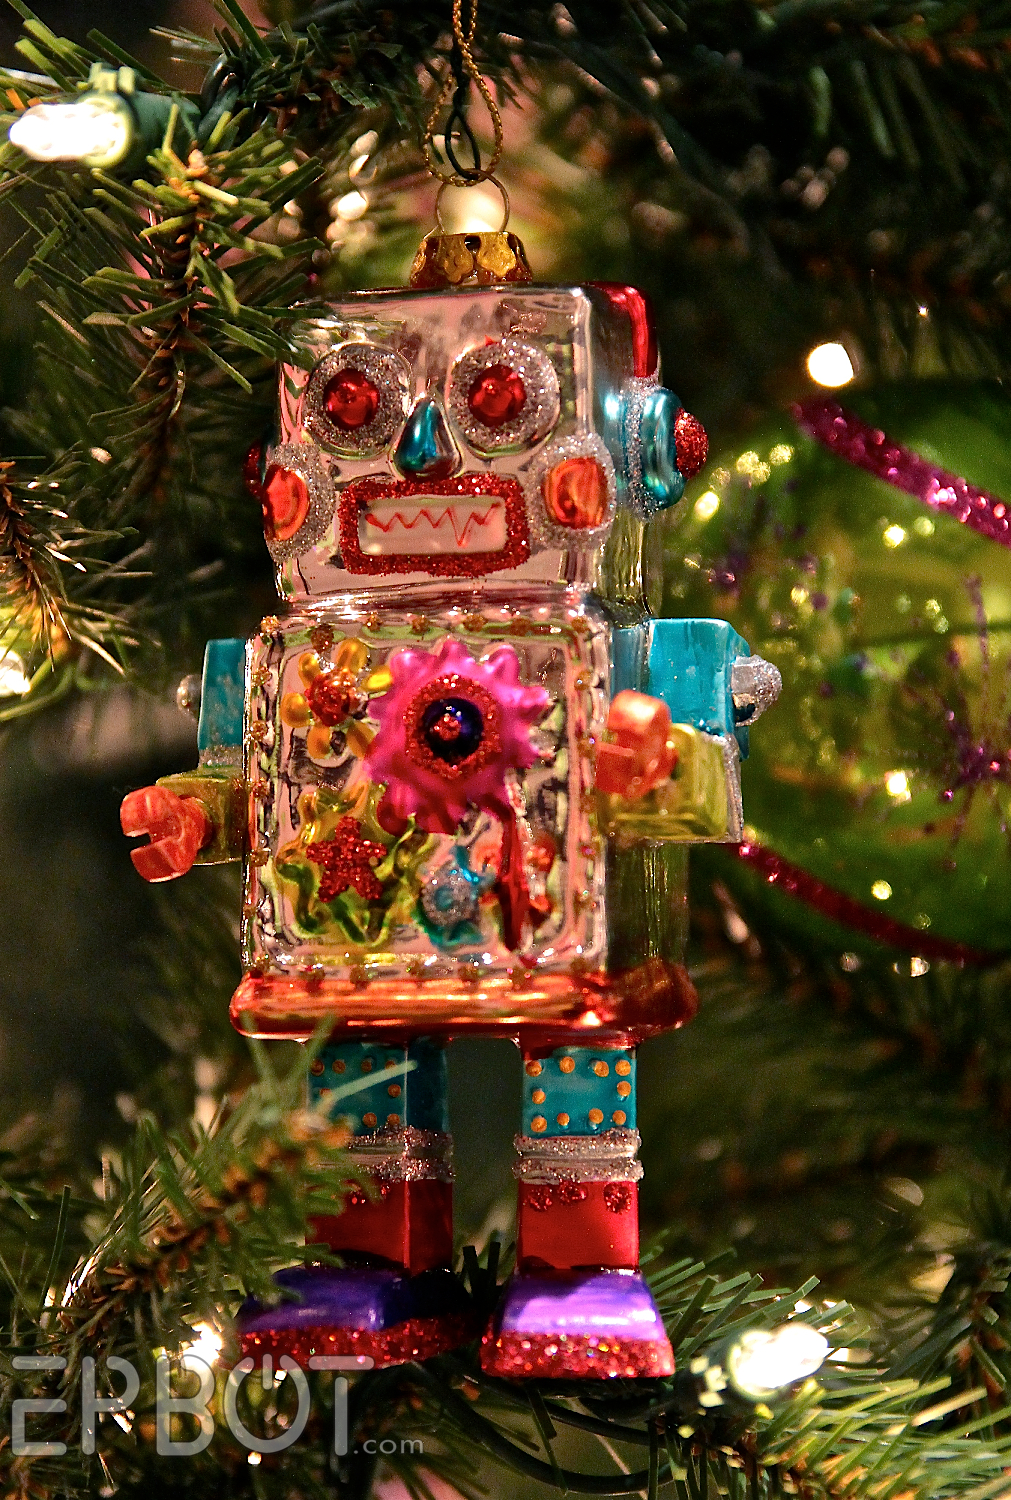 EPBOT: Christmas Tree Heaven